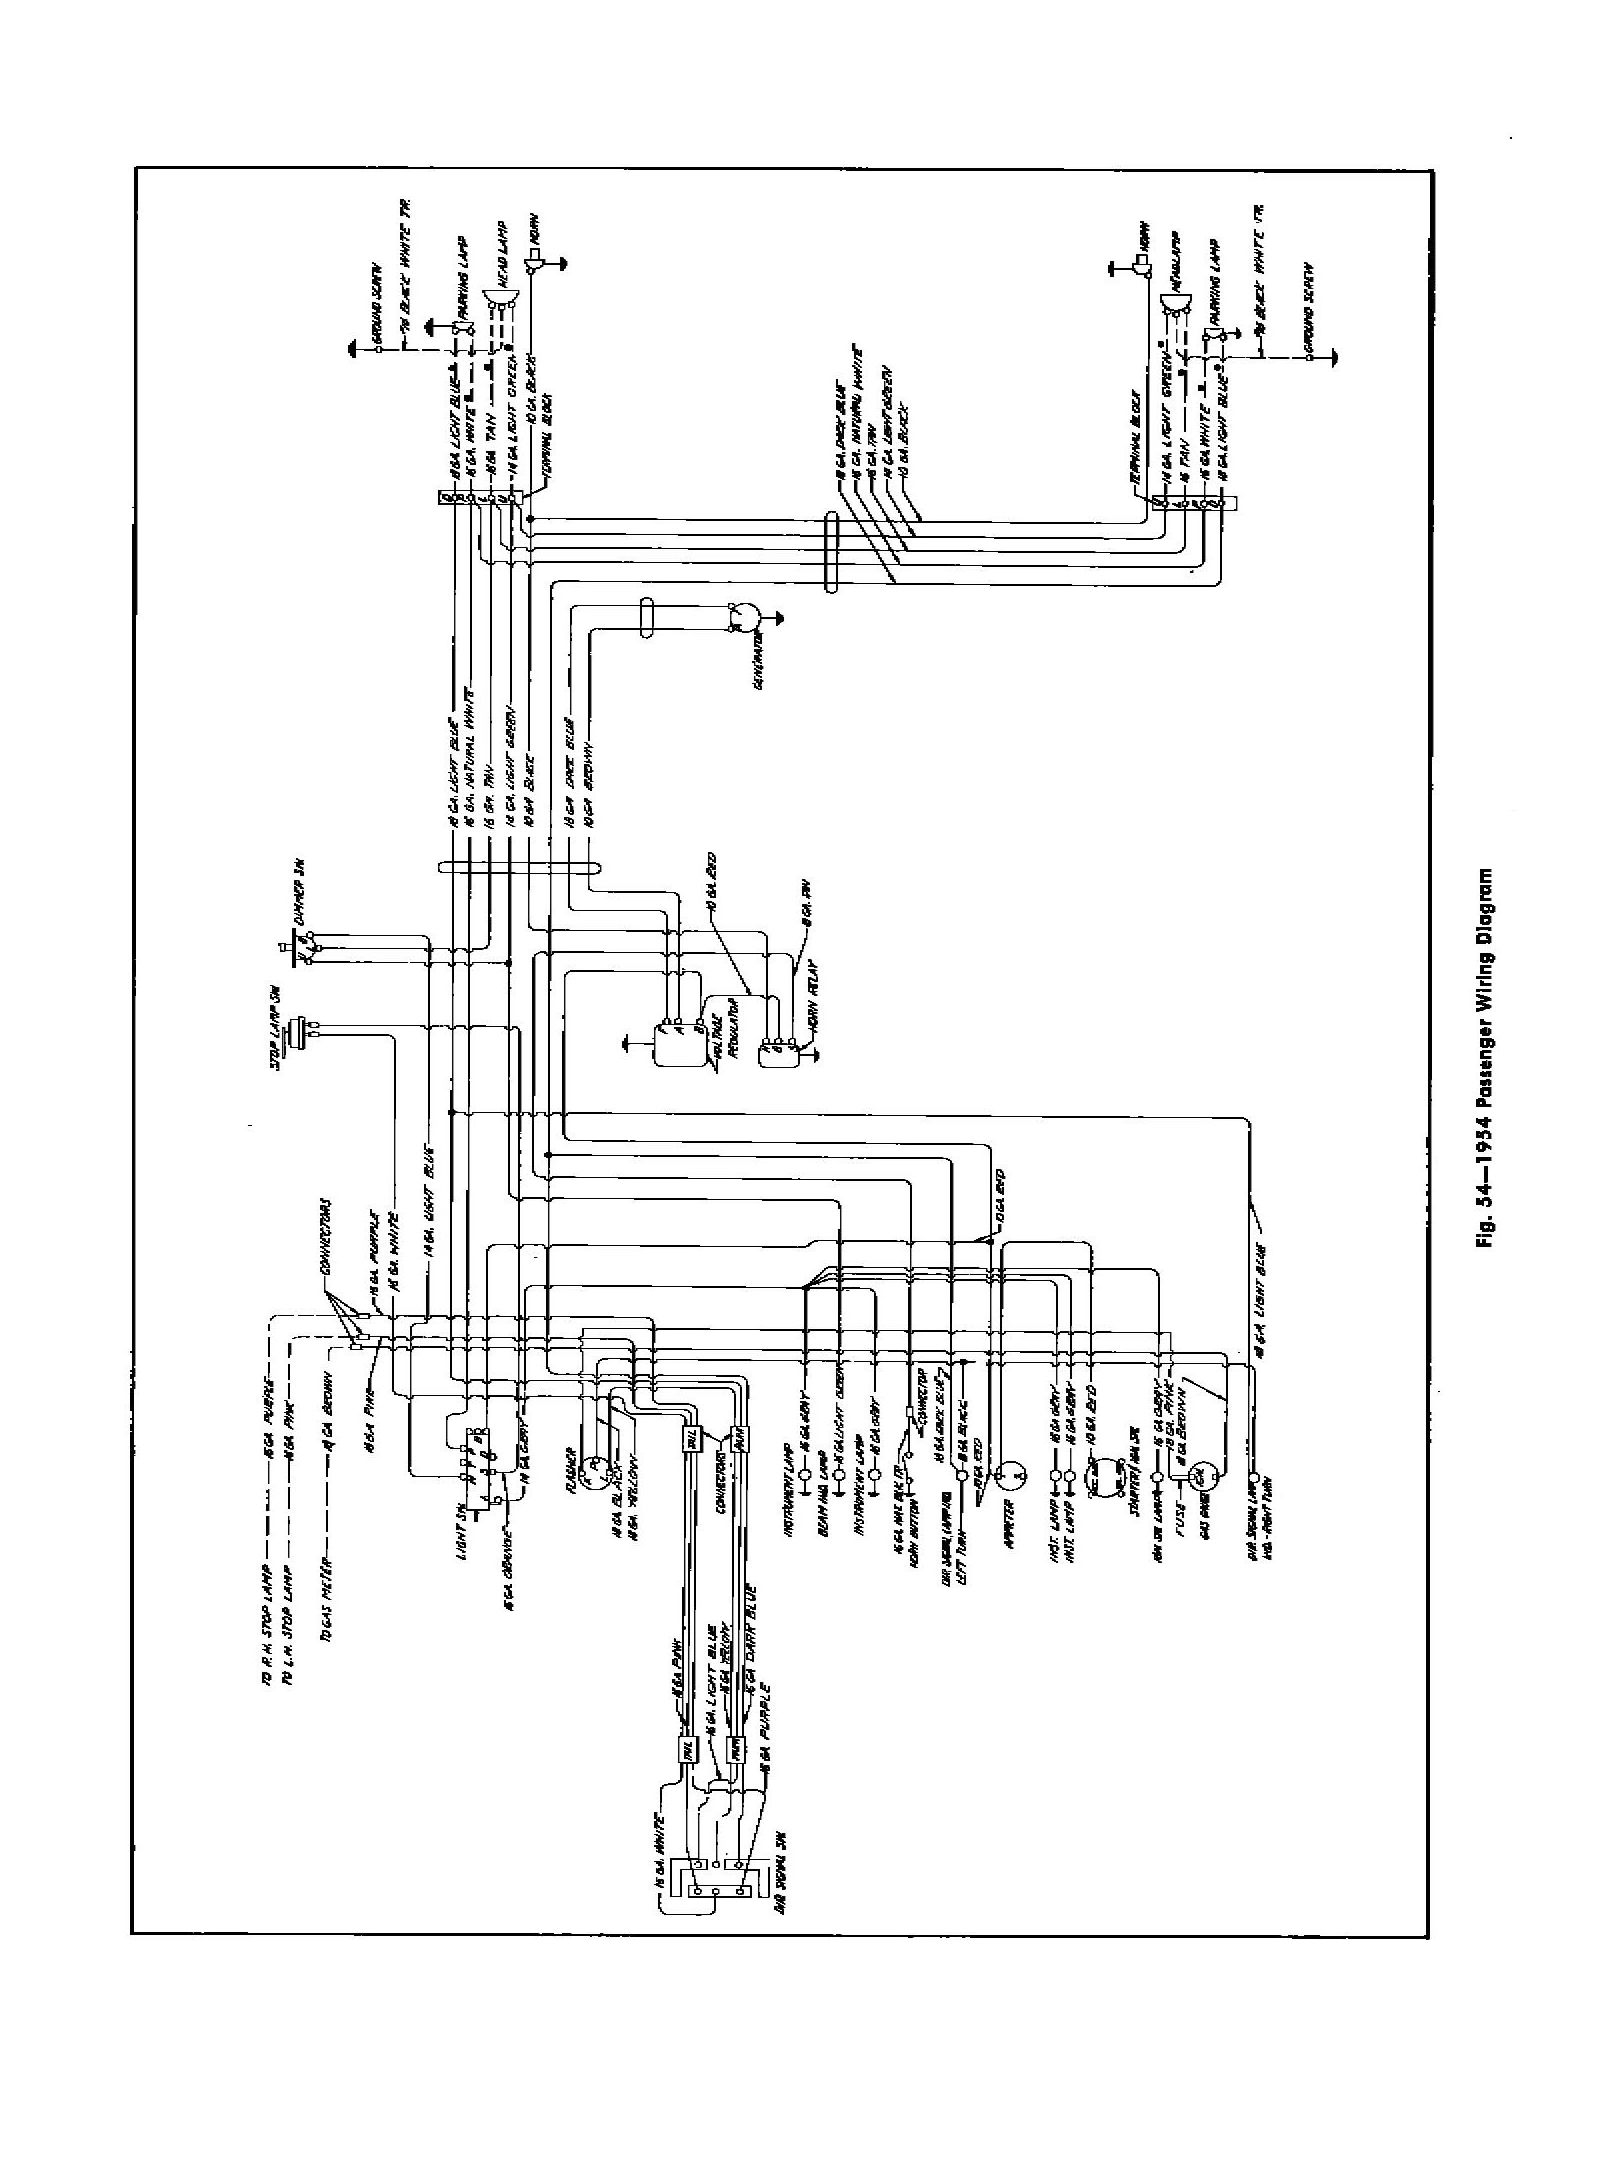 54car1 chevy wiring diagrams  at crackthecode.co